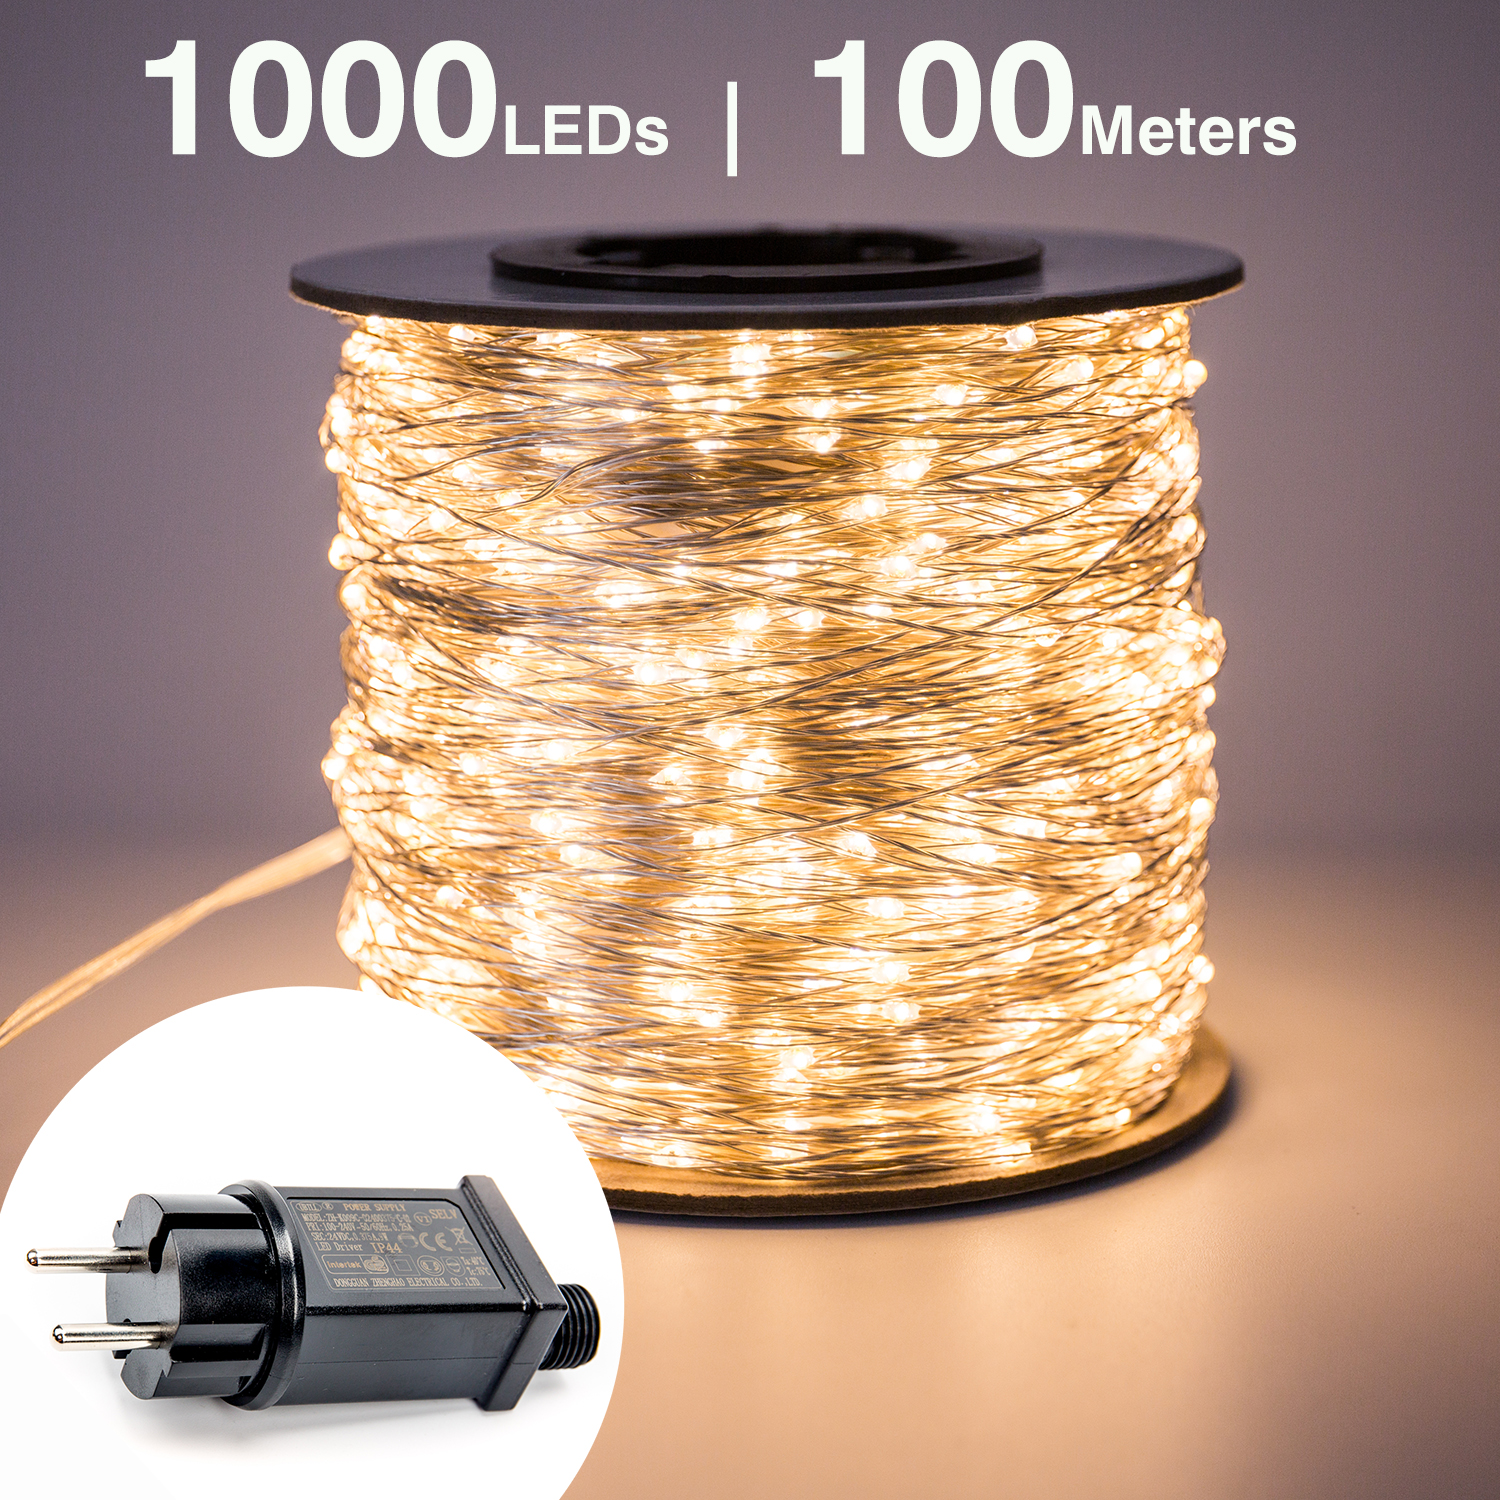 30m 50m 100m LED String Lights Street Garland Light Waterproof For Outdoor Christmas Fairy Lights Holiday Wedding Decoration